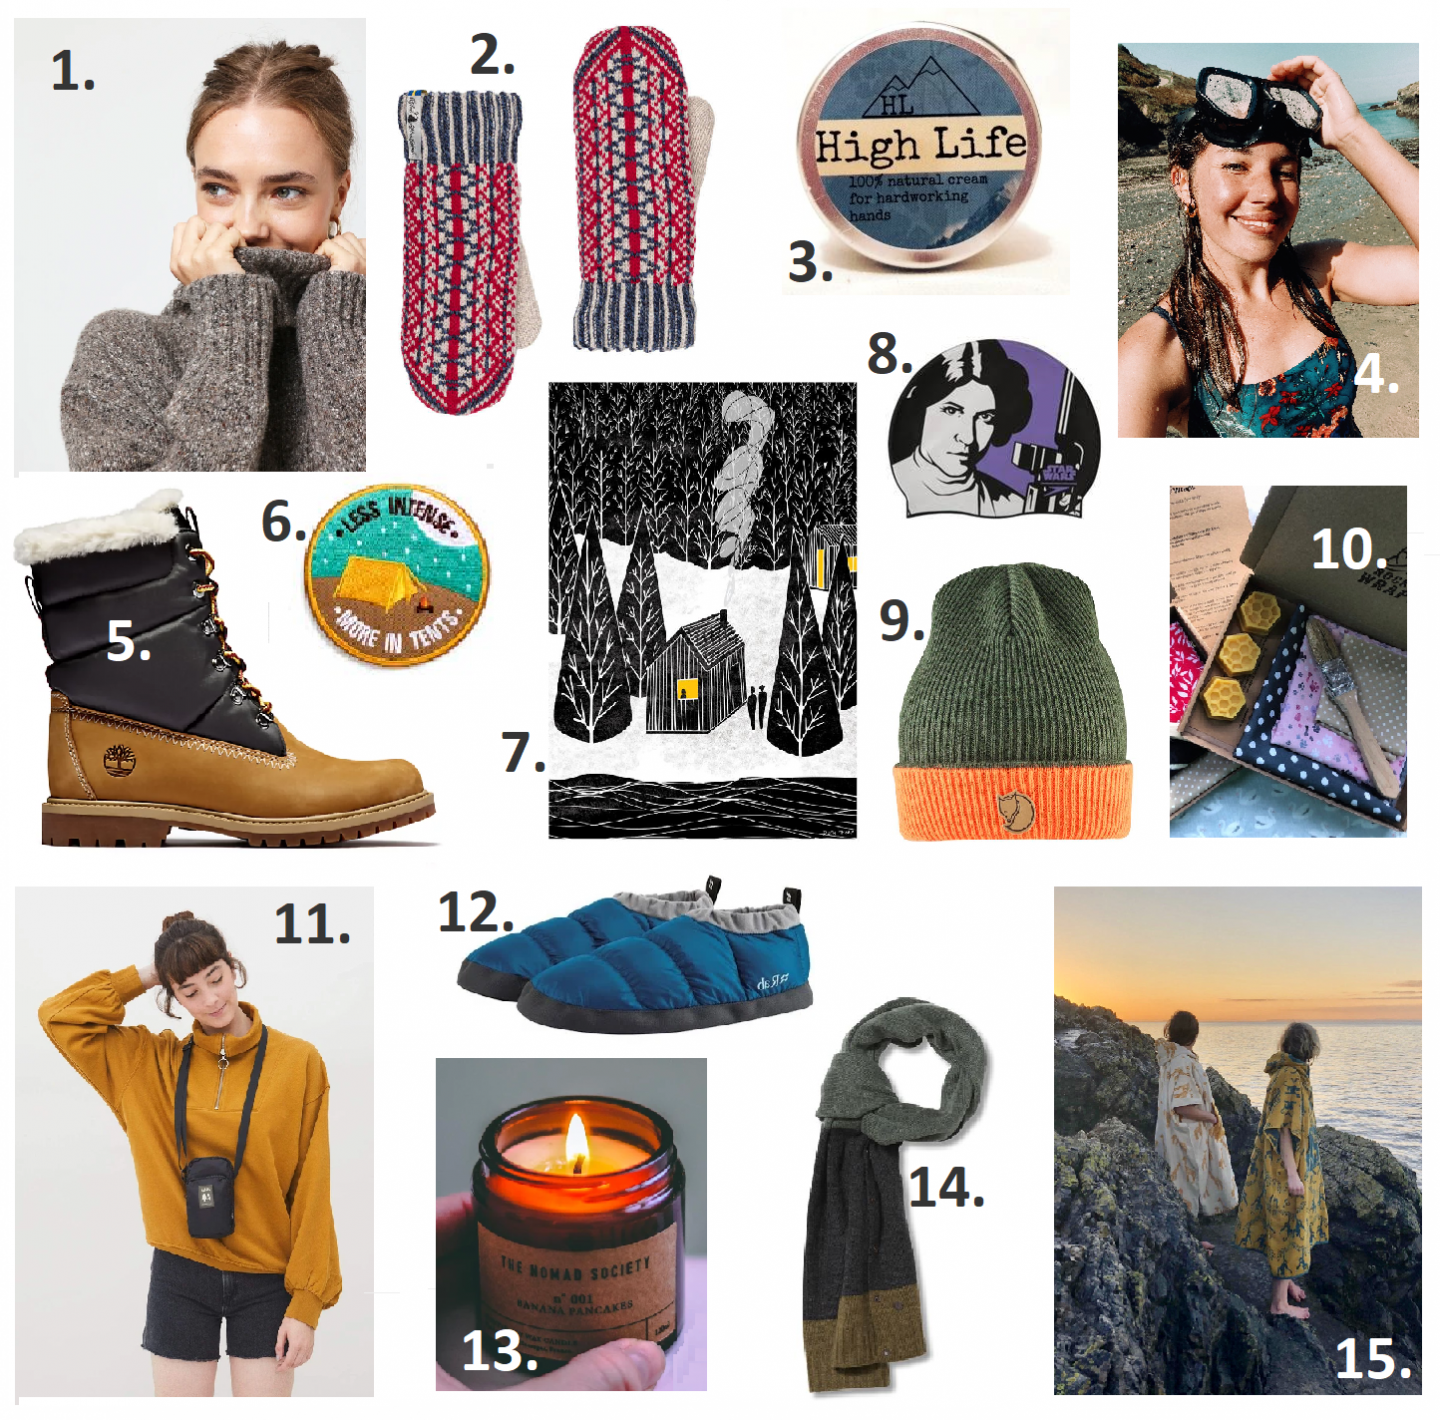 Travel And Outdoors Christmas Gift Guide 2020 | Best Outdoor Presents